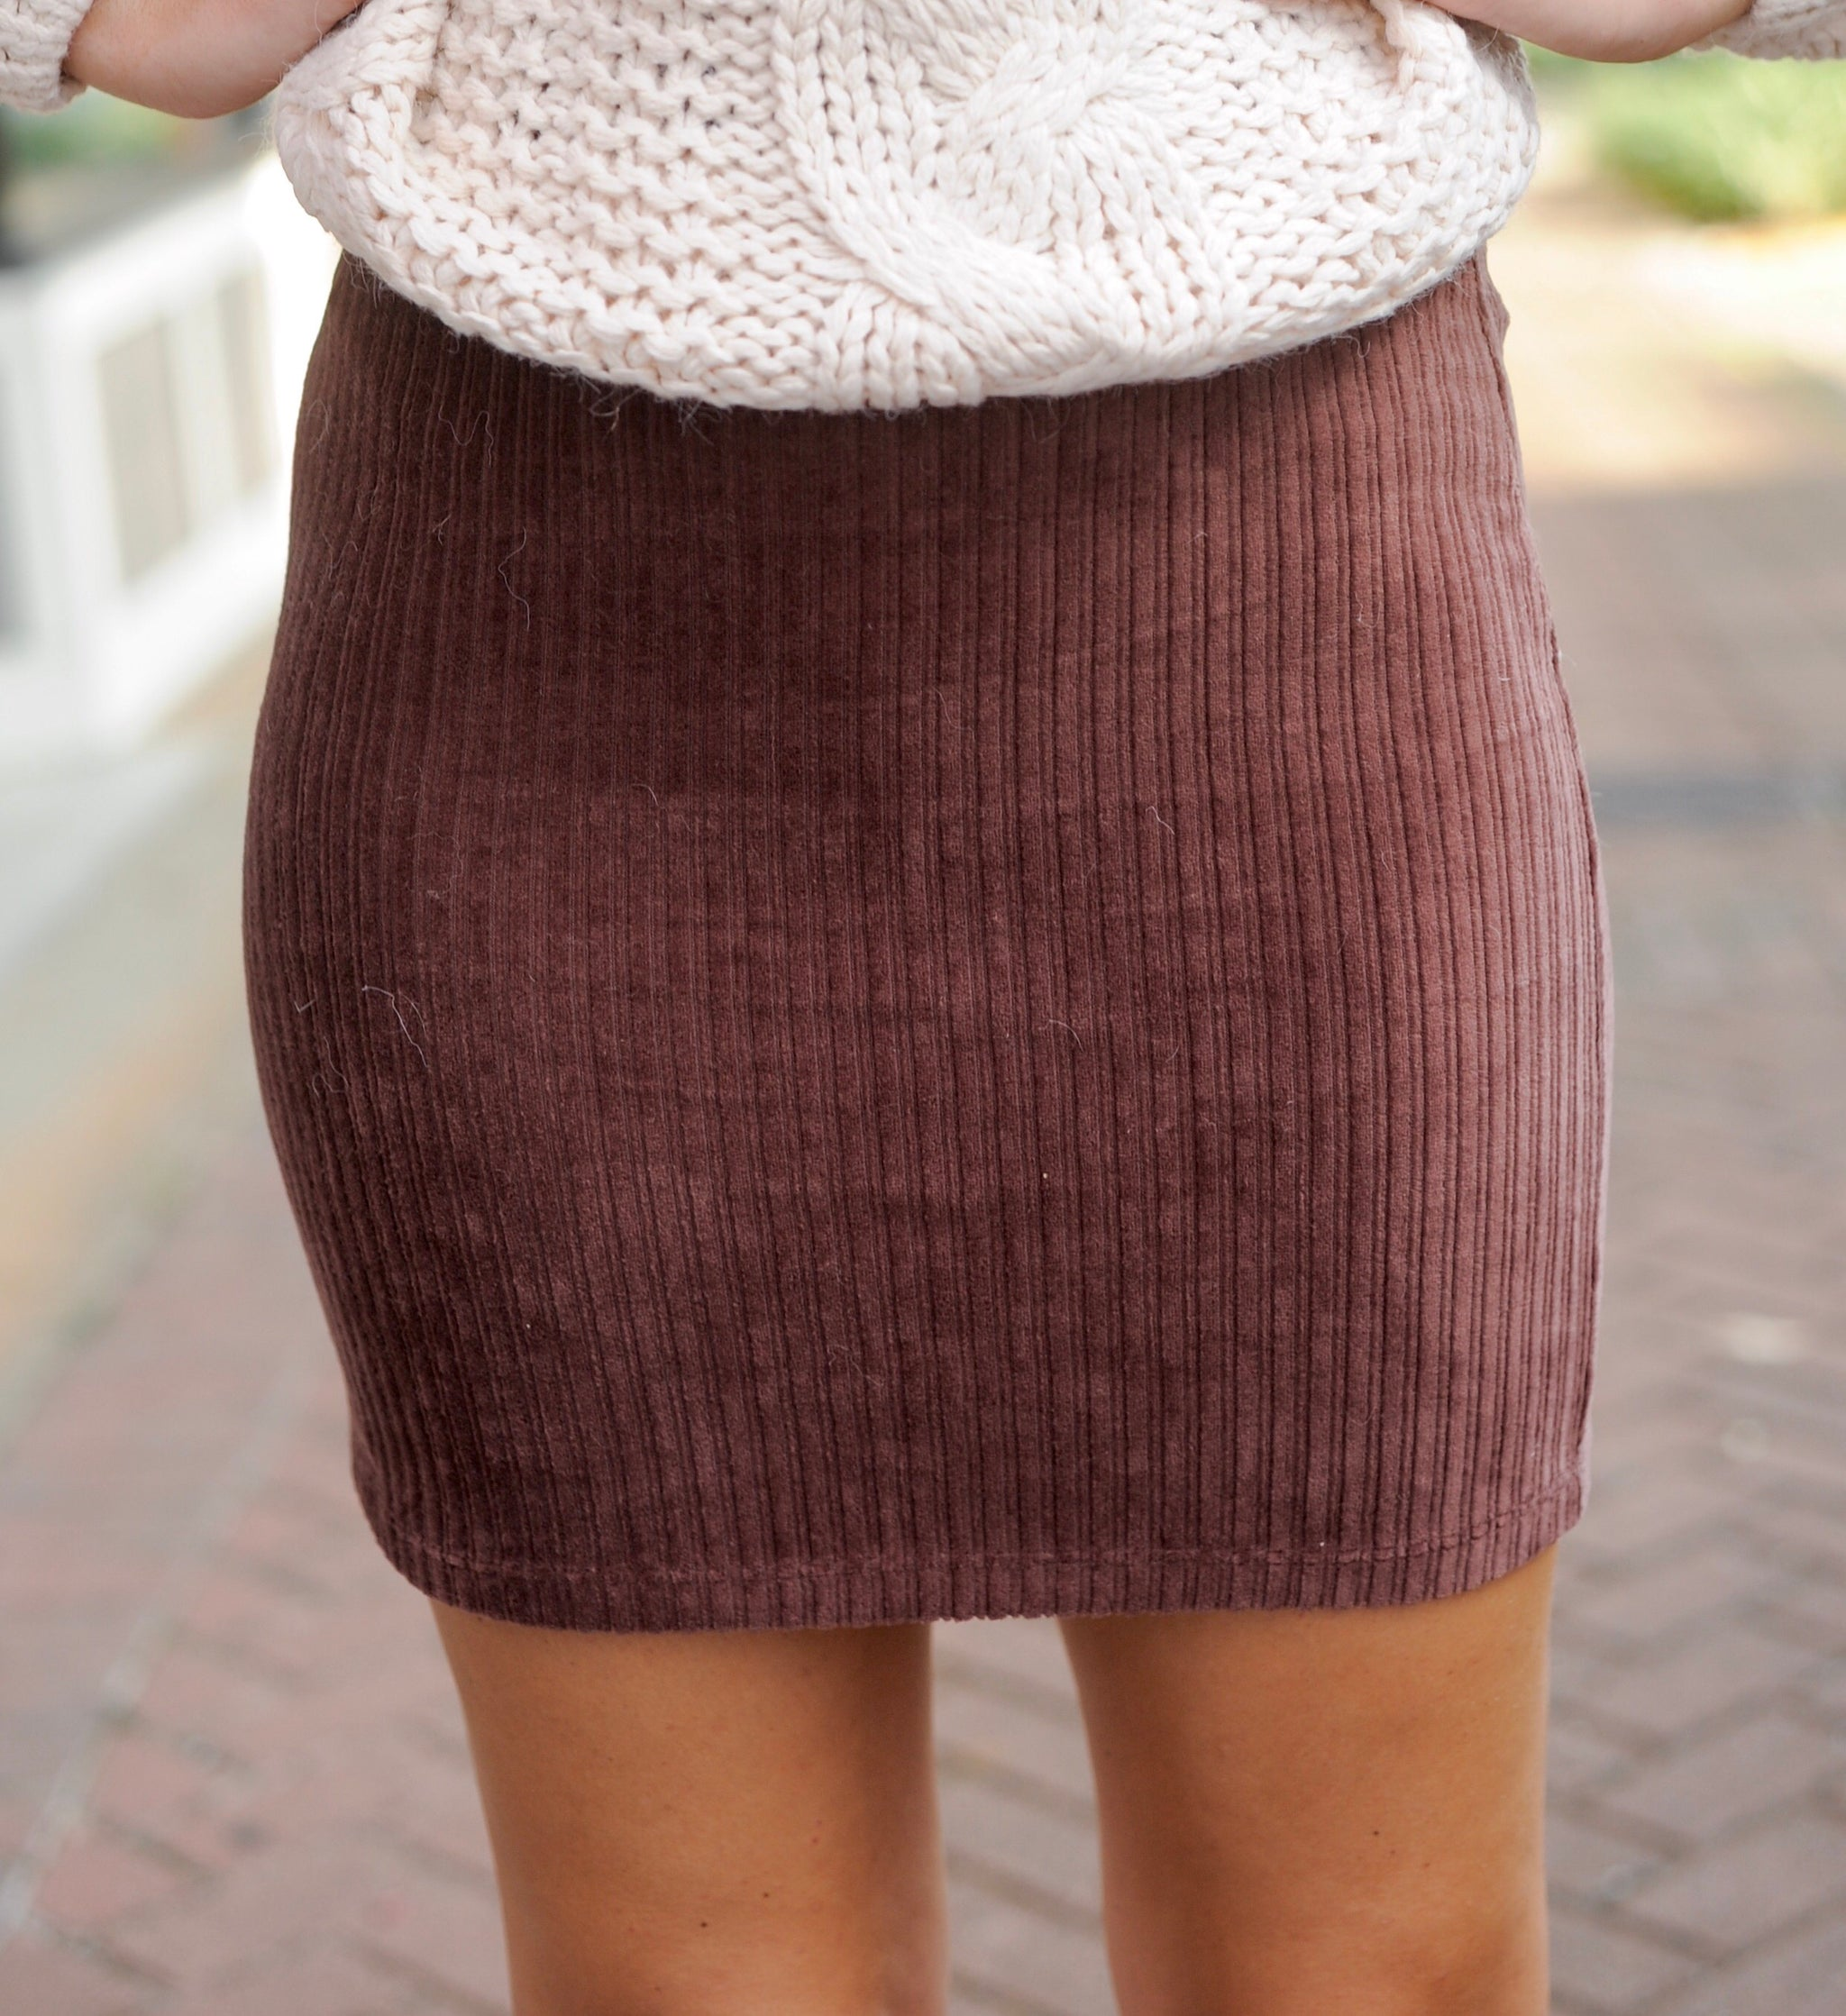 Simple Corduroy Skirt - Chocolate